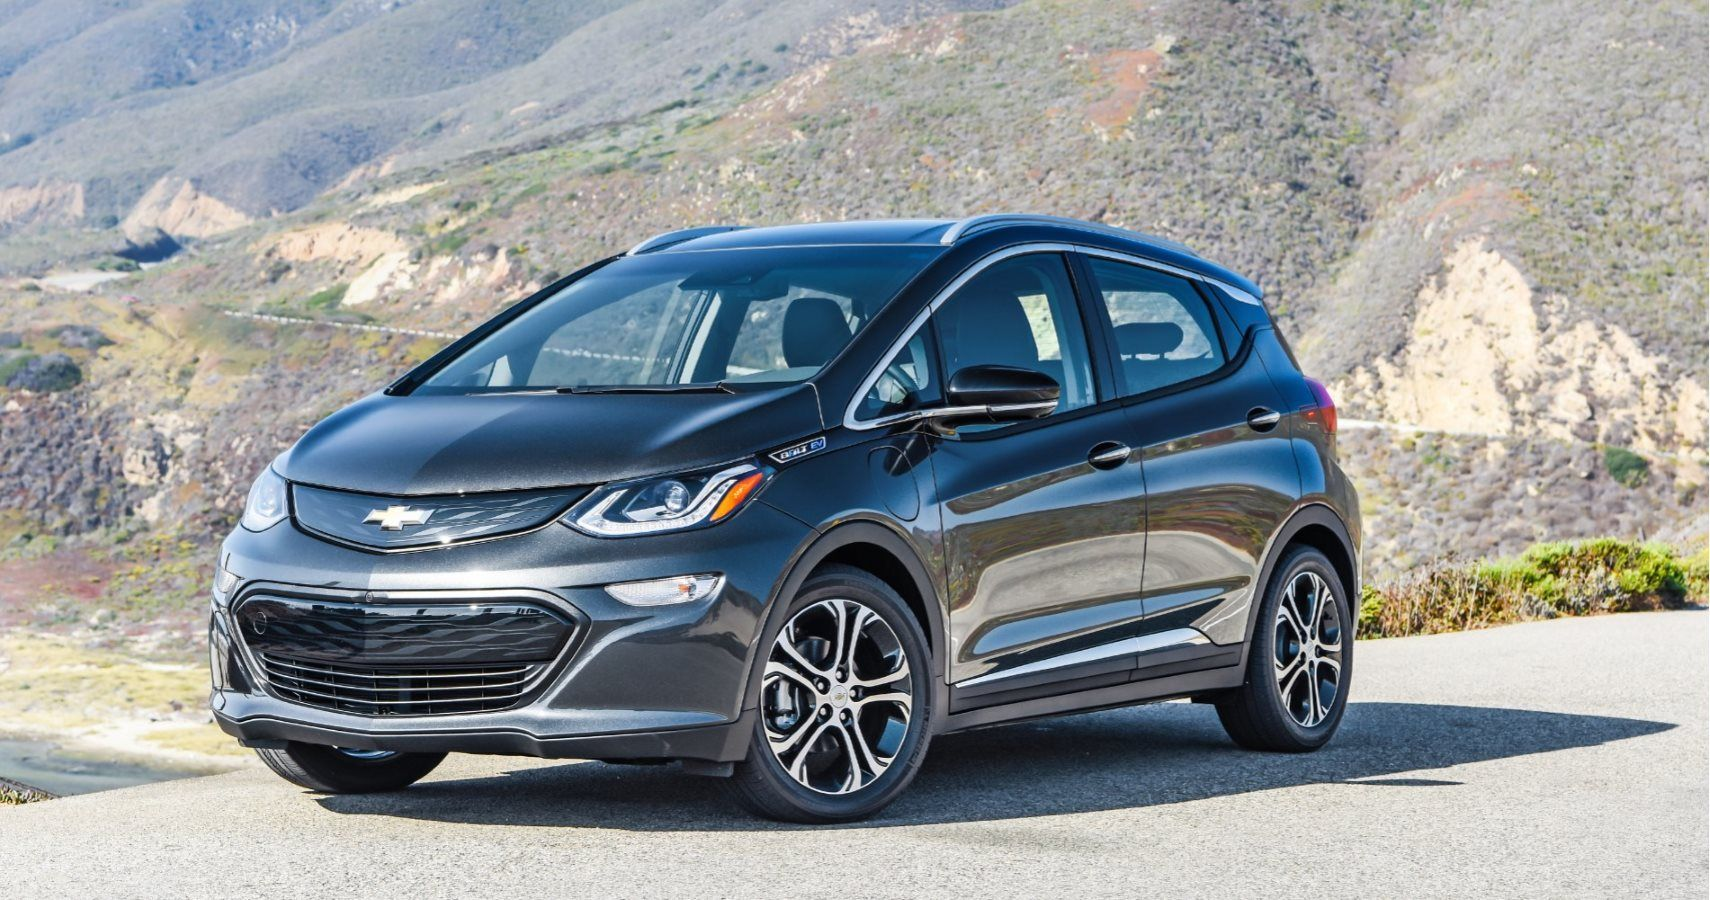 Gm Trademarks Bolt Euv In A Move That Might Signal Chevy S First Electric Suv